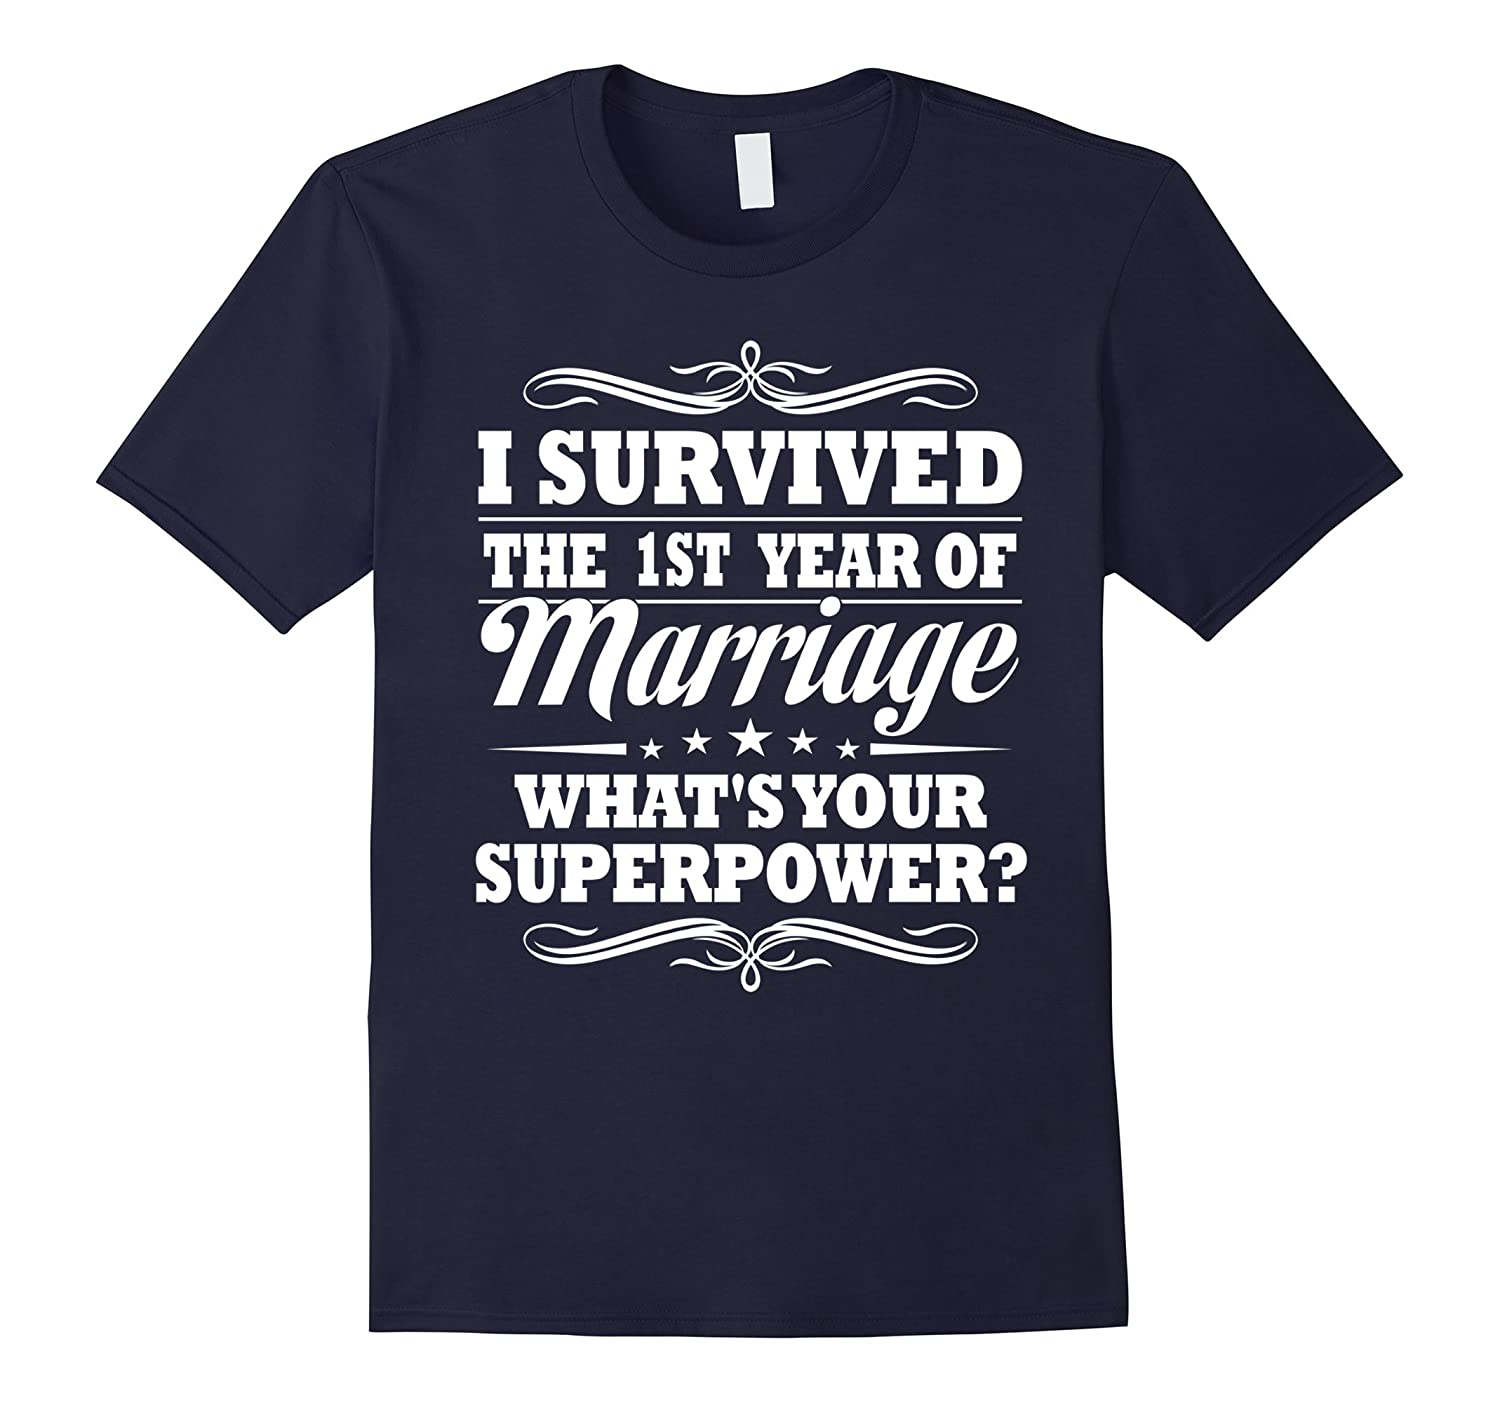 Silver Wedding Anniversary Gifts For Him: 1st Wedding Anniversary Gift Ideas For Her Him- I Survived